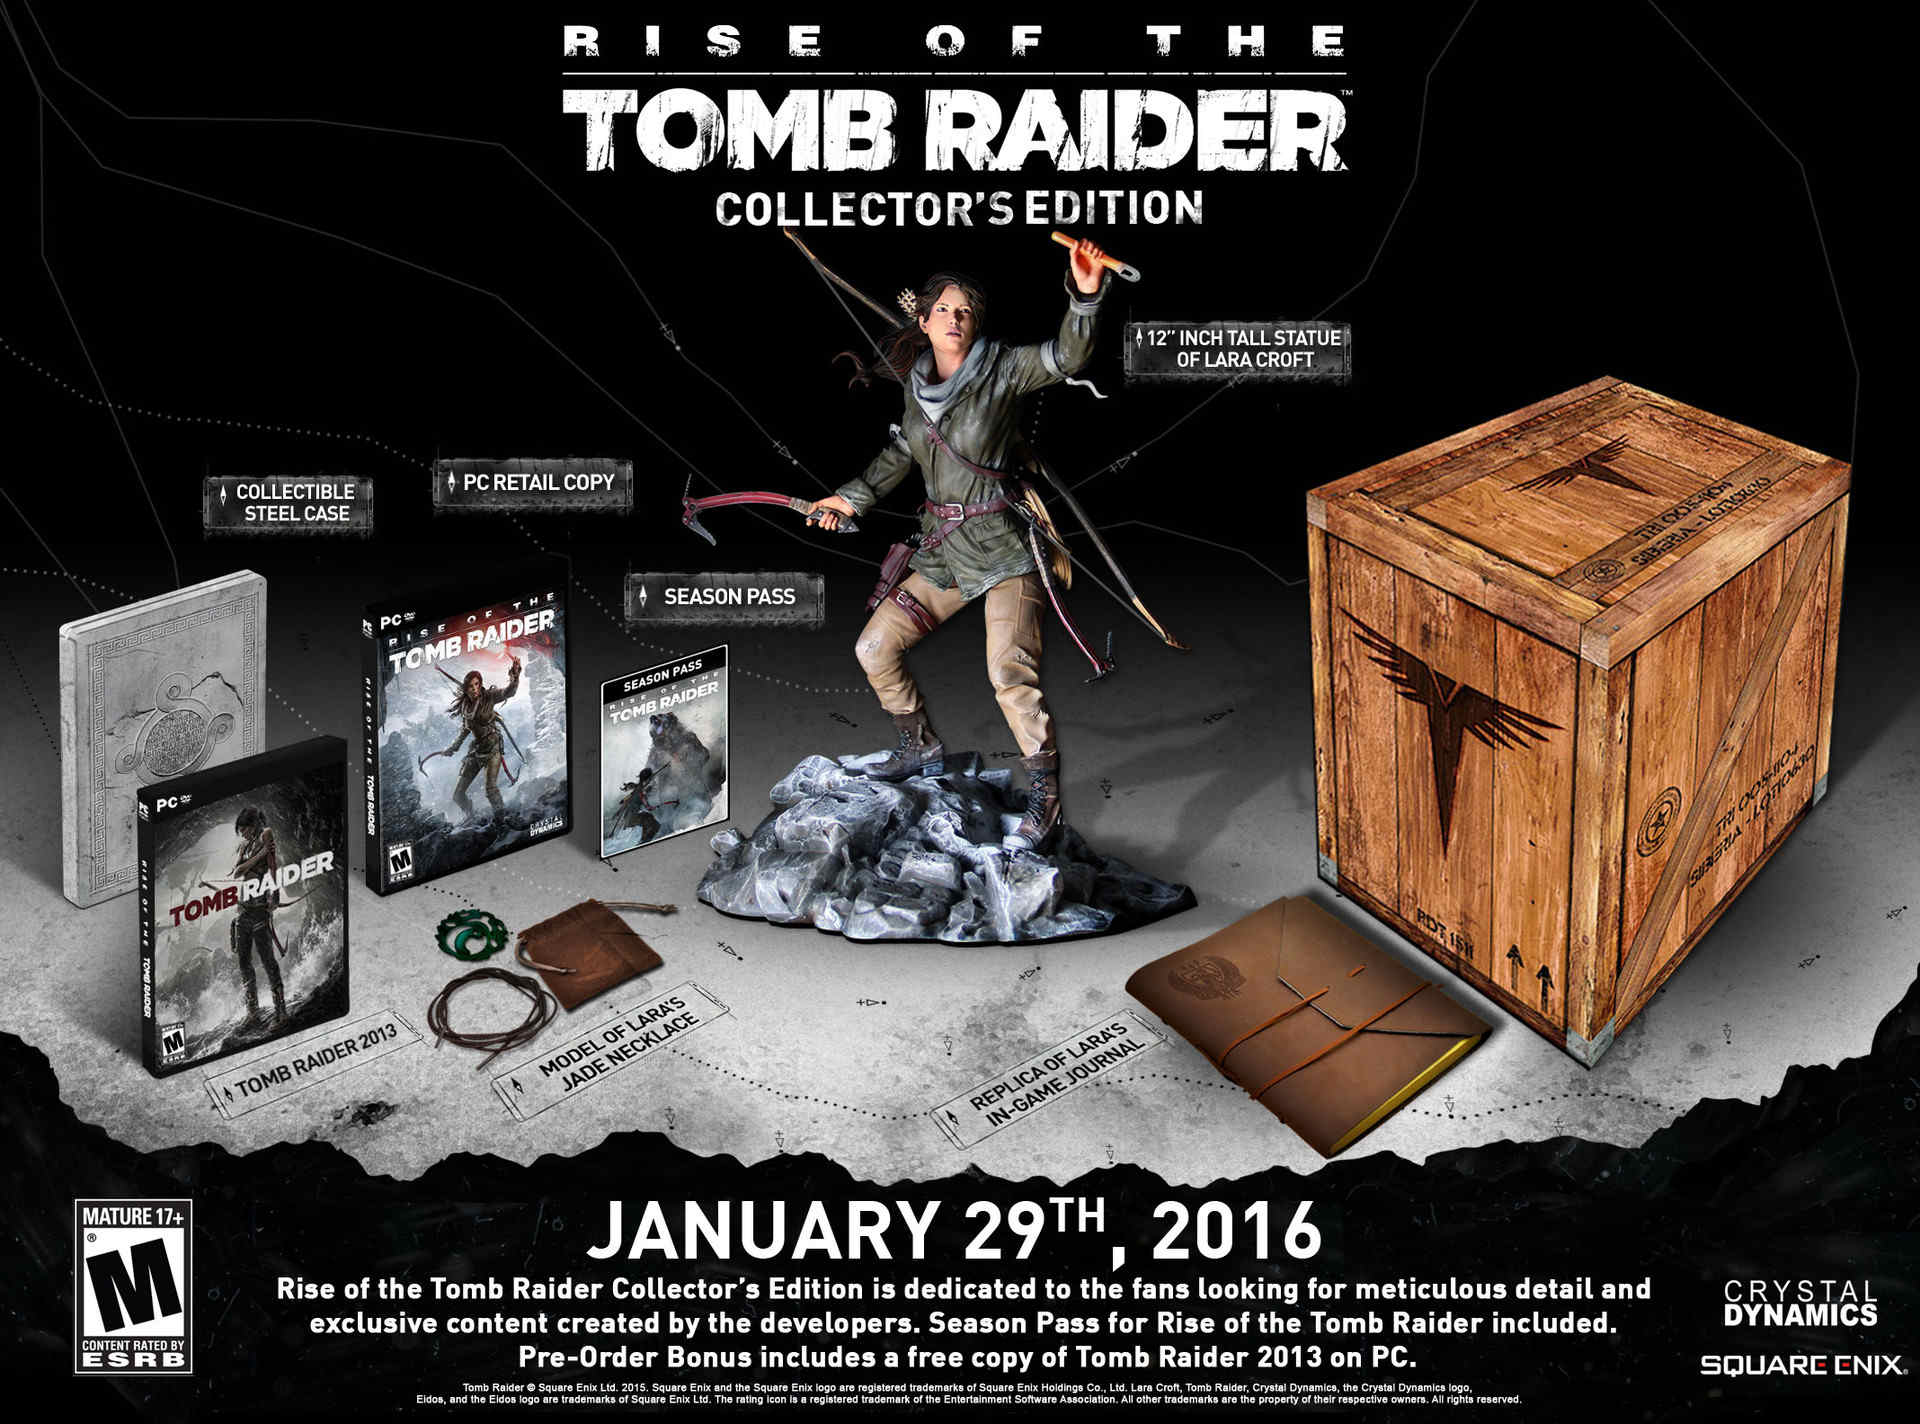 Rise Of The Tomb Raider Headed To PC Platforms Later This Month